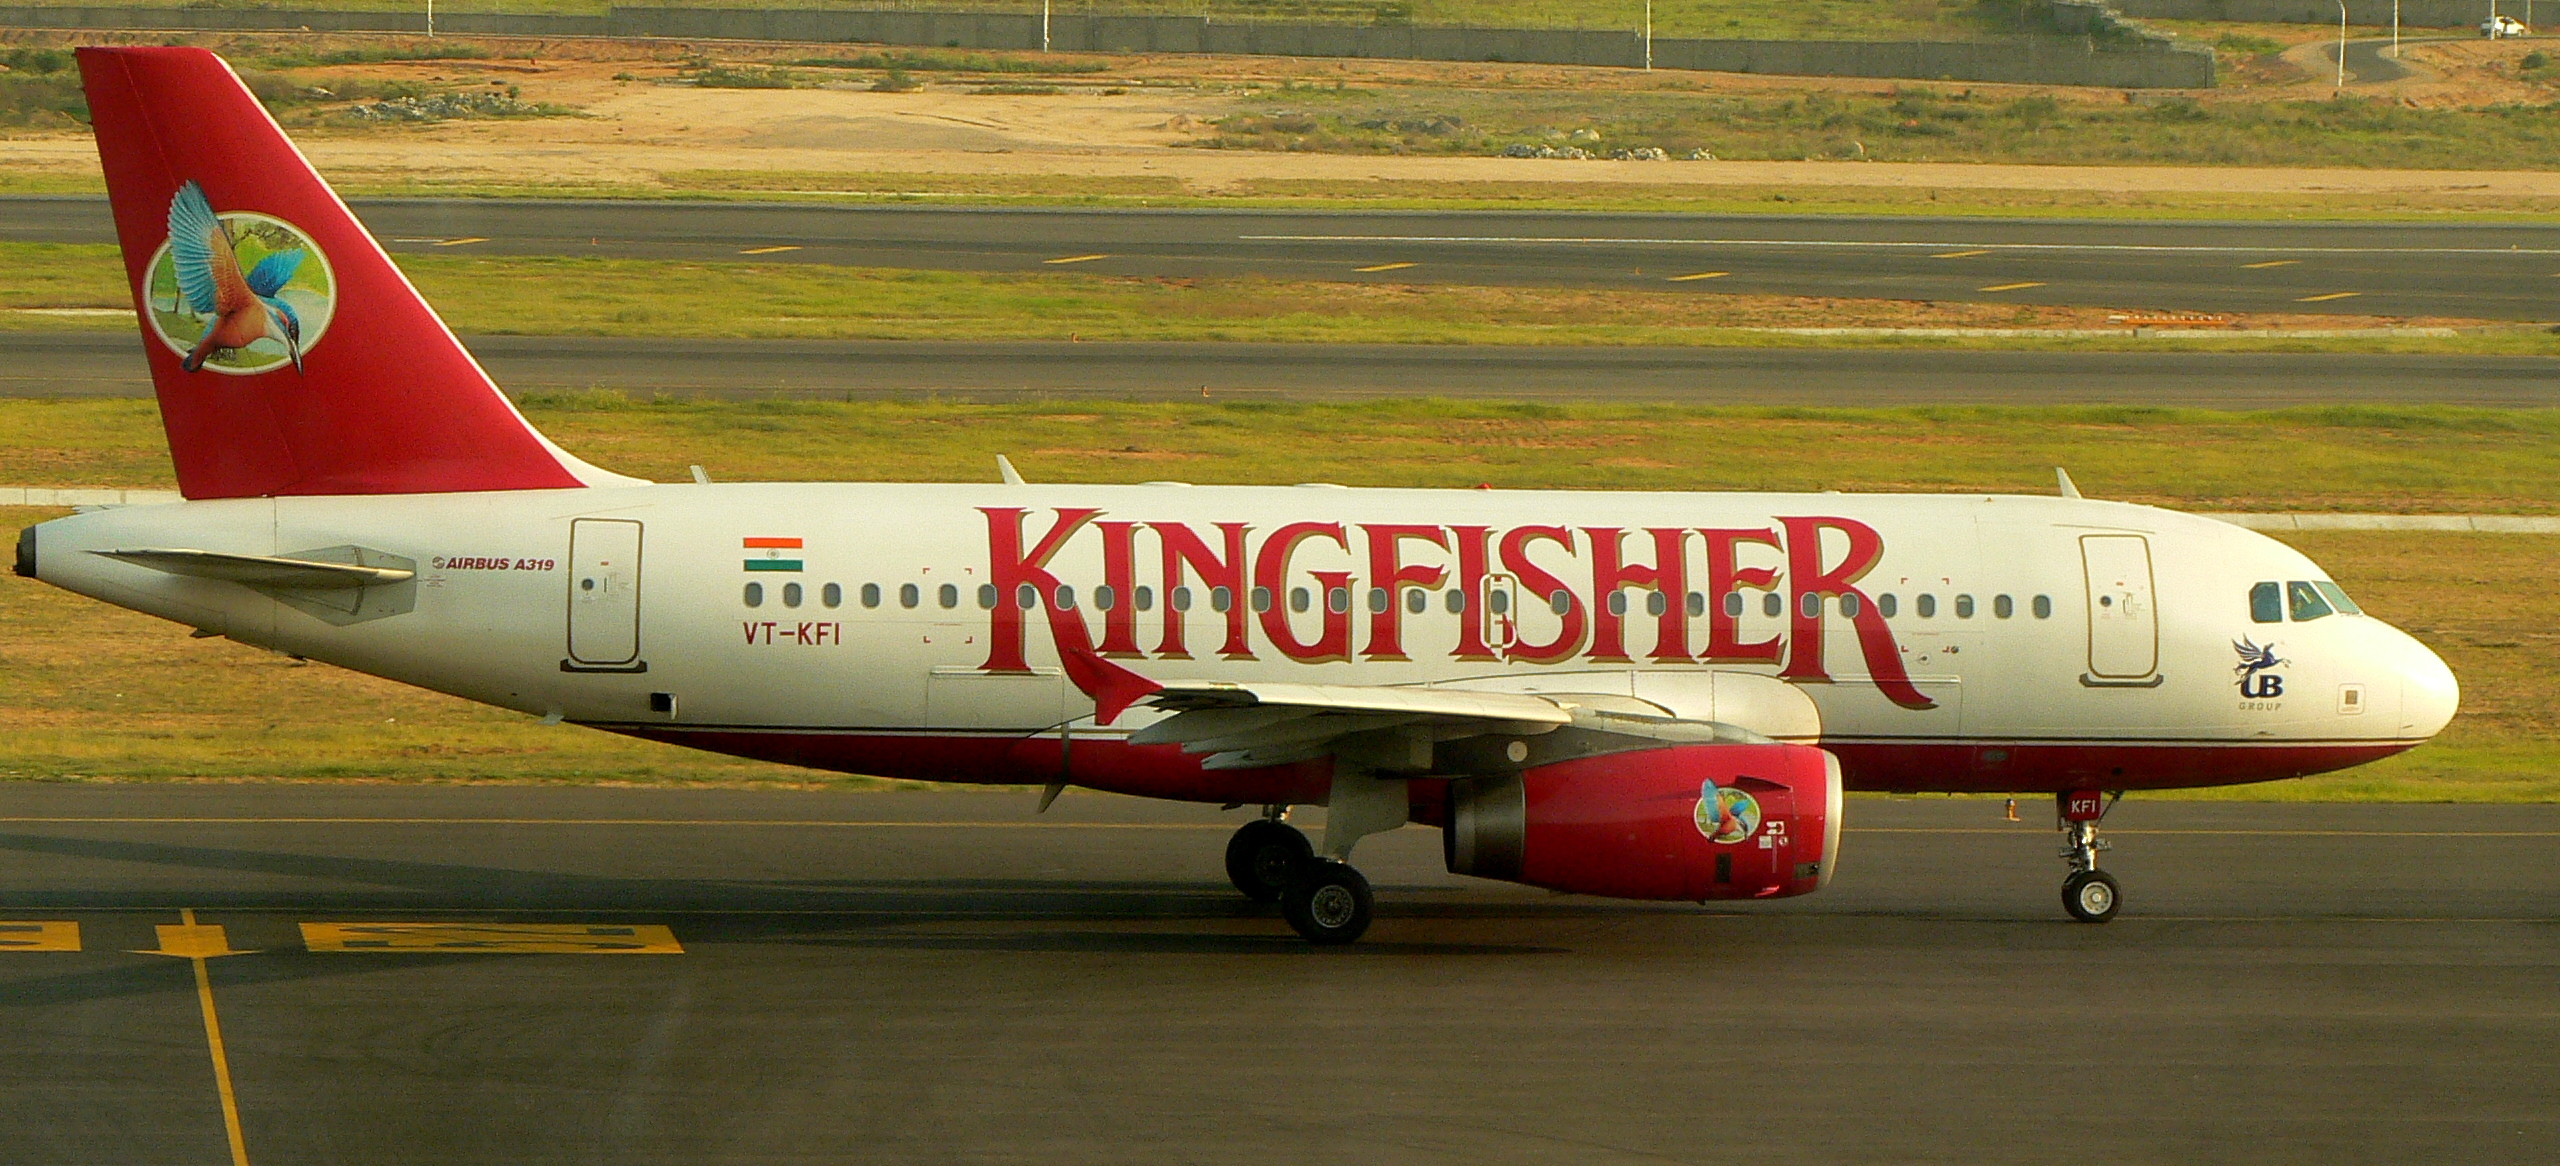 Kingfisher Airlines Image